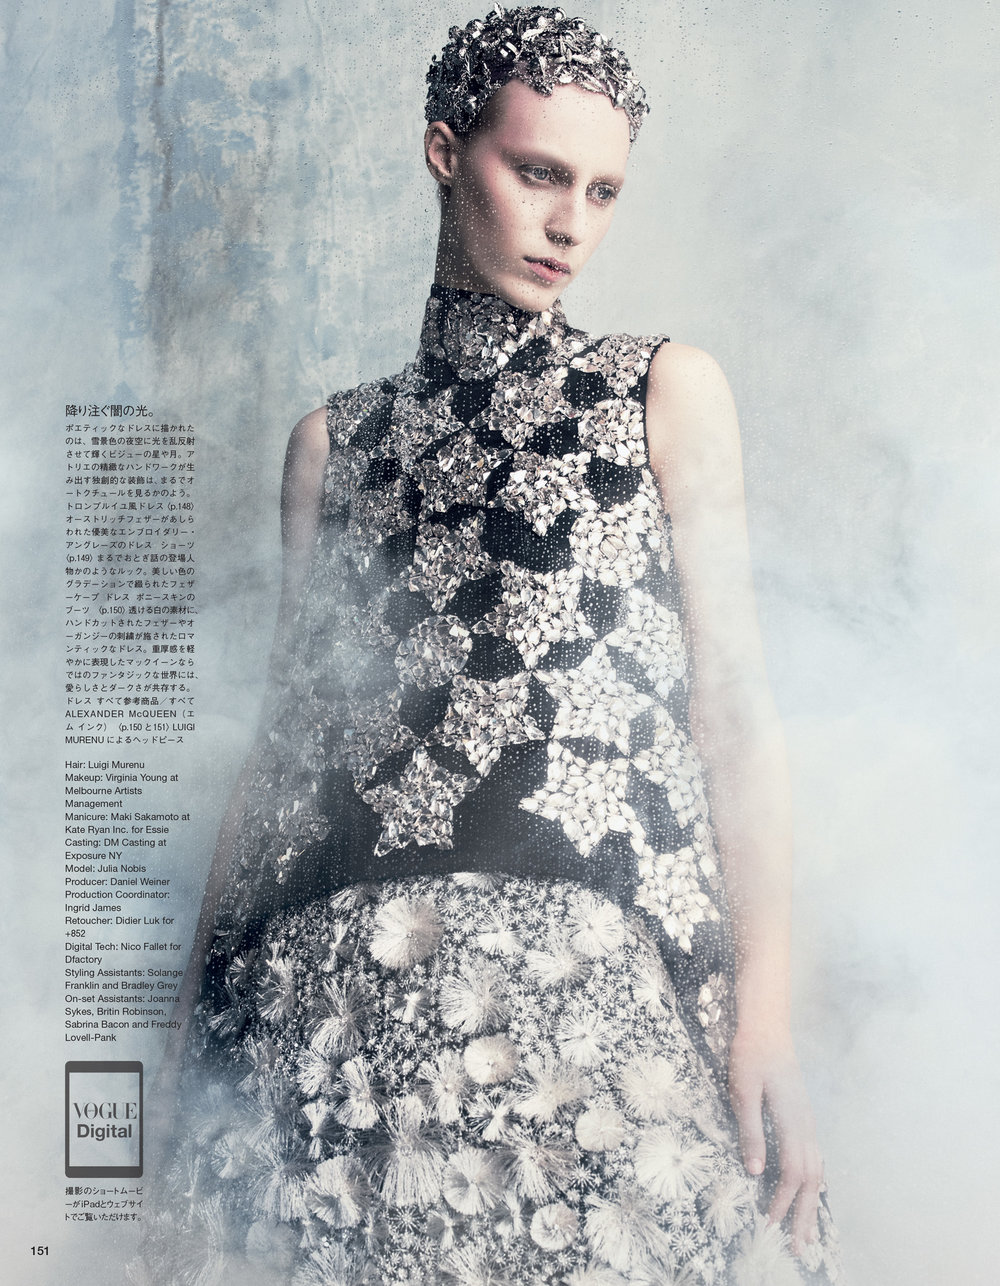 Giovanna-Battaglia-Tales-Of-Magic-And-Innocense-Vogue-Japan-Daniel-Iango-V181_151_200.jpg